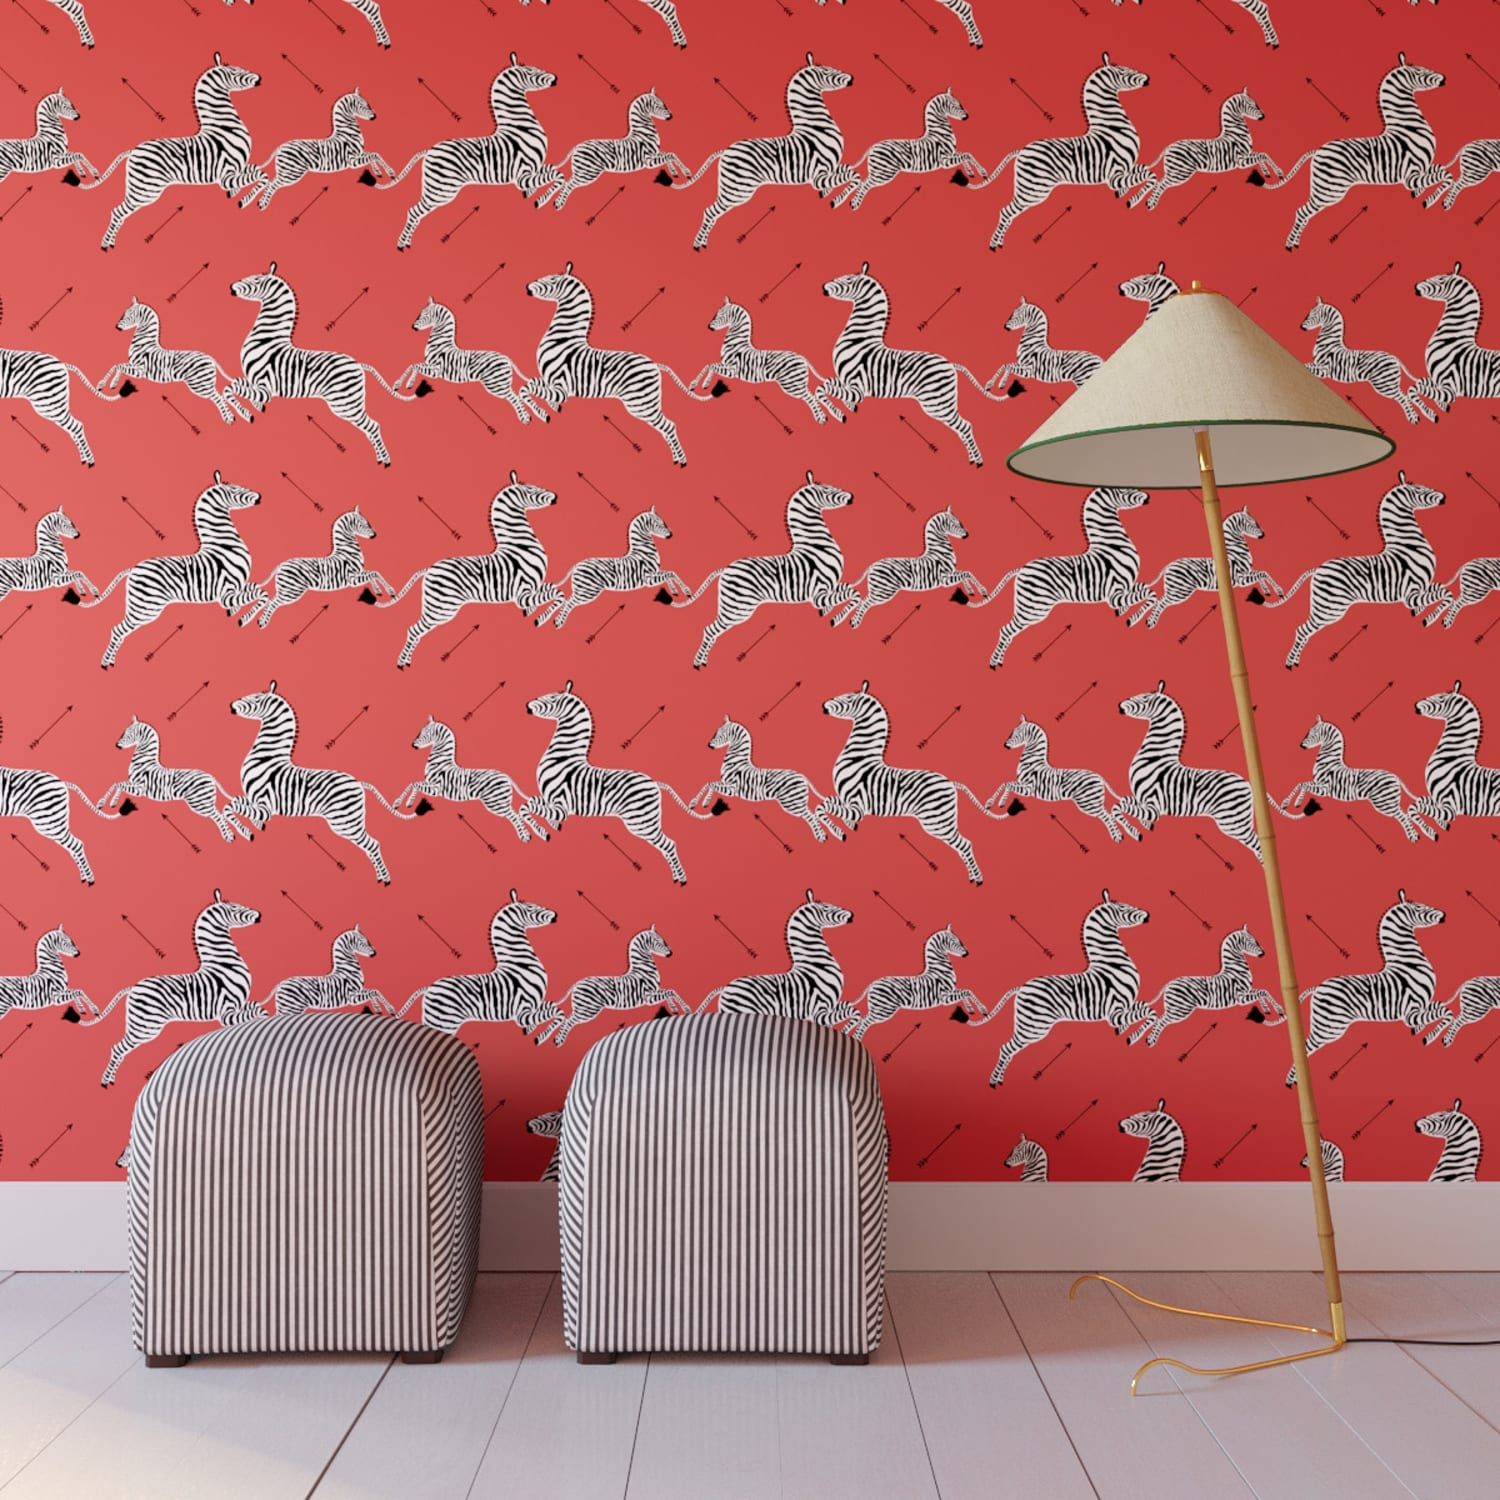 The Zebra-Print Wallpaper from 'The Royal Tenenbaums' Is Now Available in Peel-and-Stick Form